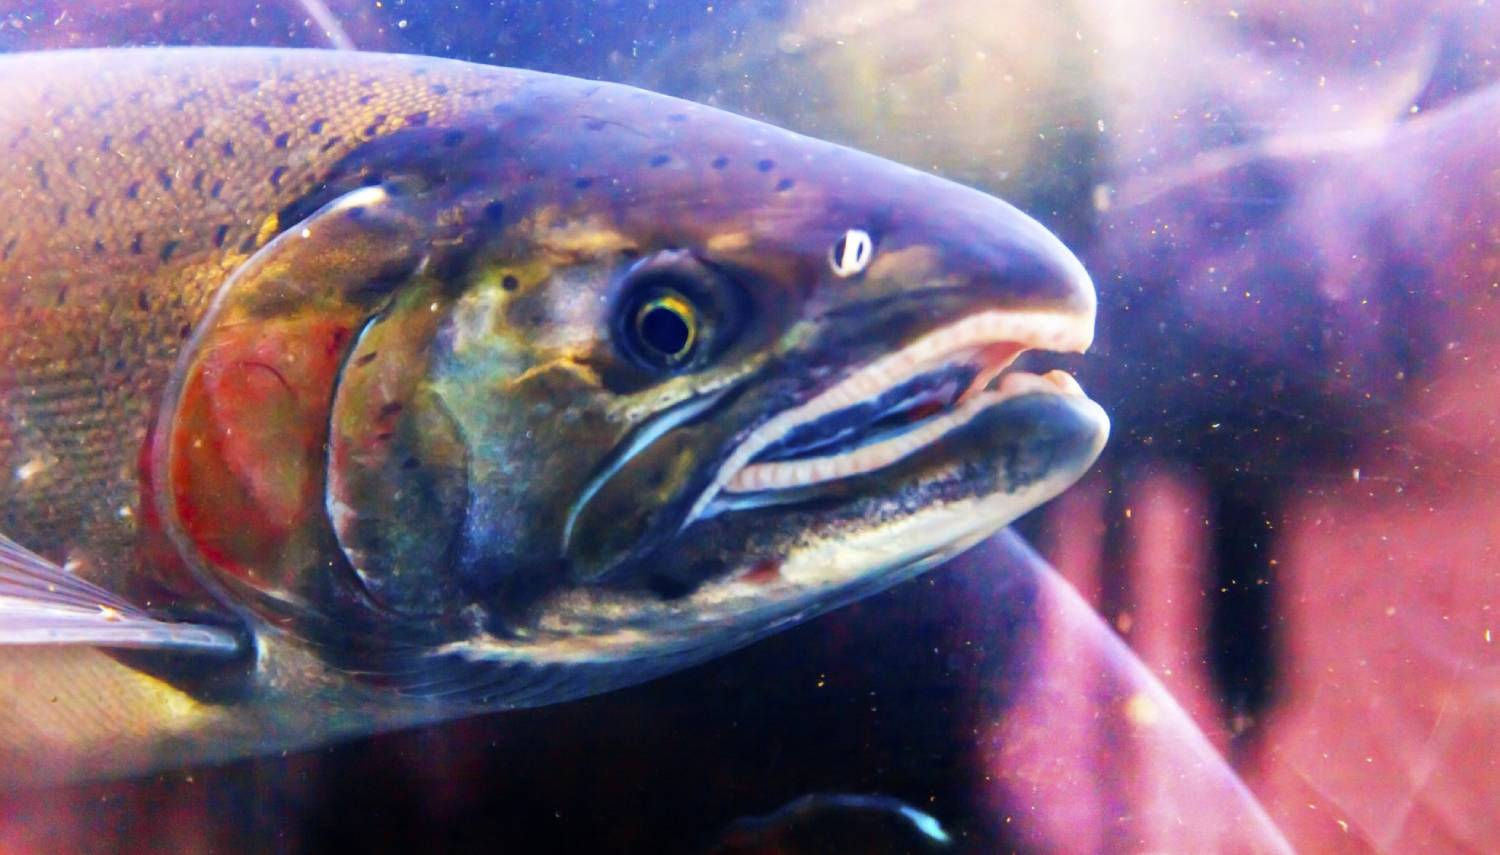 Capilano Salmon Hatchery - Things To Do In Vancouver